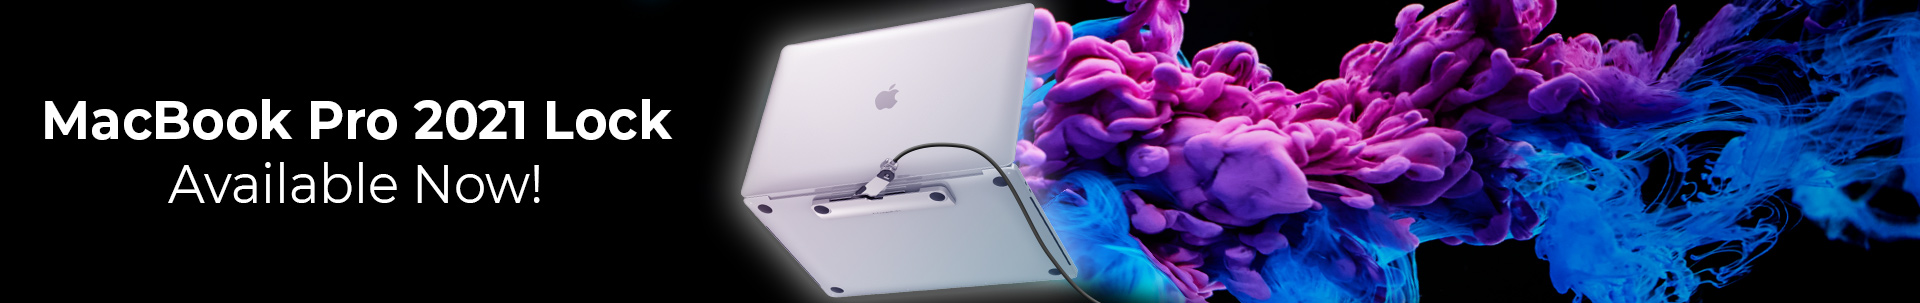 MacBook Pro 2021 Lock Available Now!